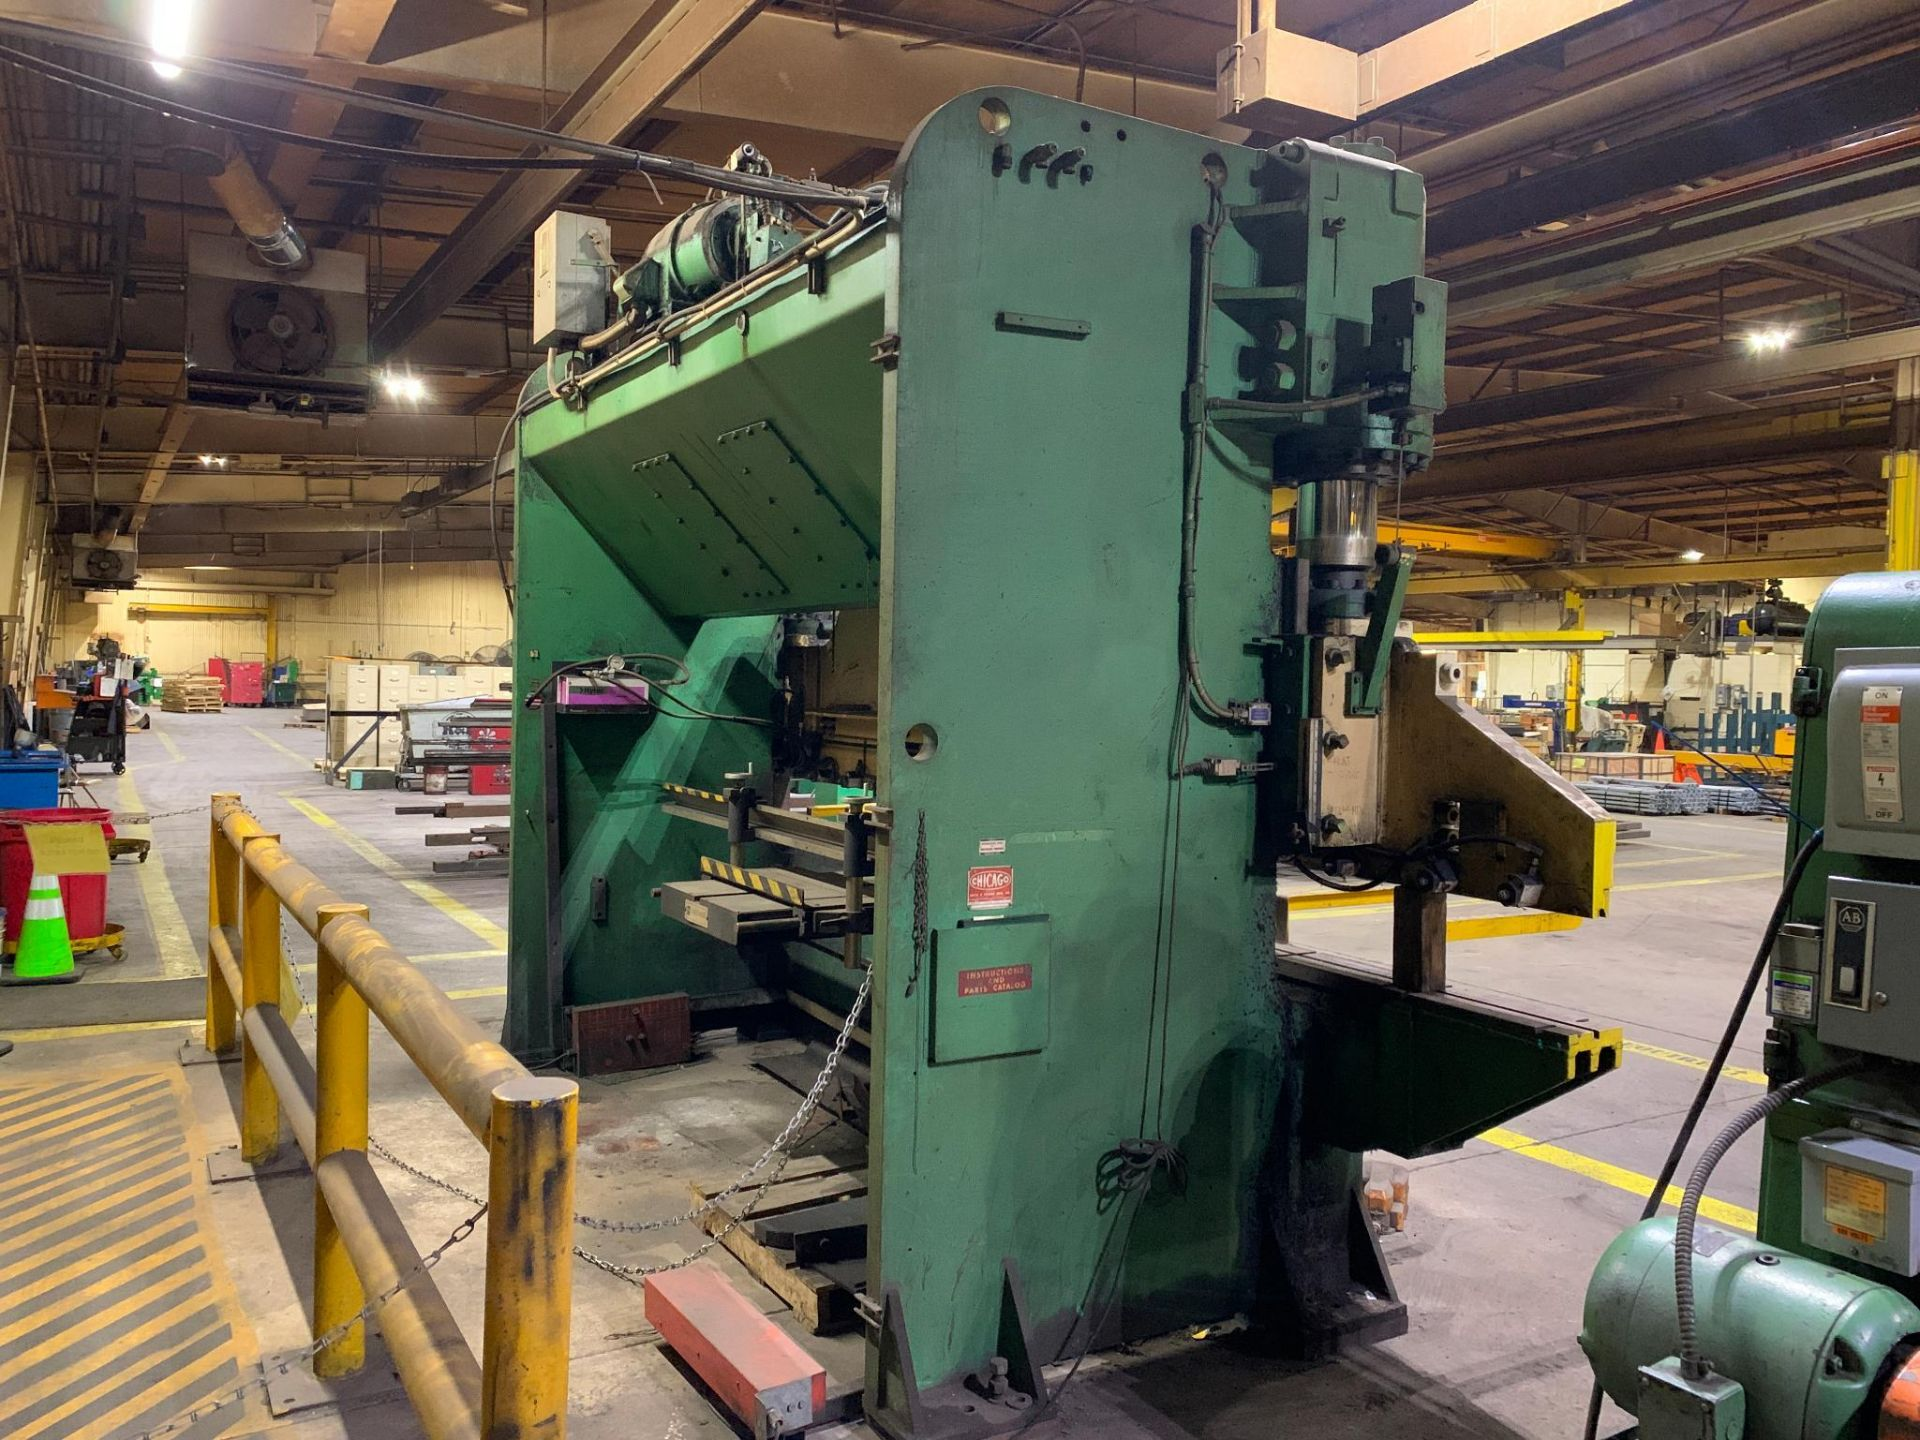 Chicago Dries & Krump Hydraulic Press Brake With: Hurco Autobend 7 Backgauge Control 200 Ton x 16' M - Image 5 of 41